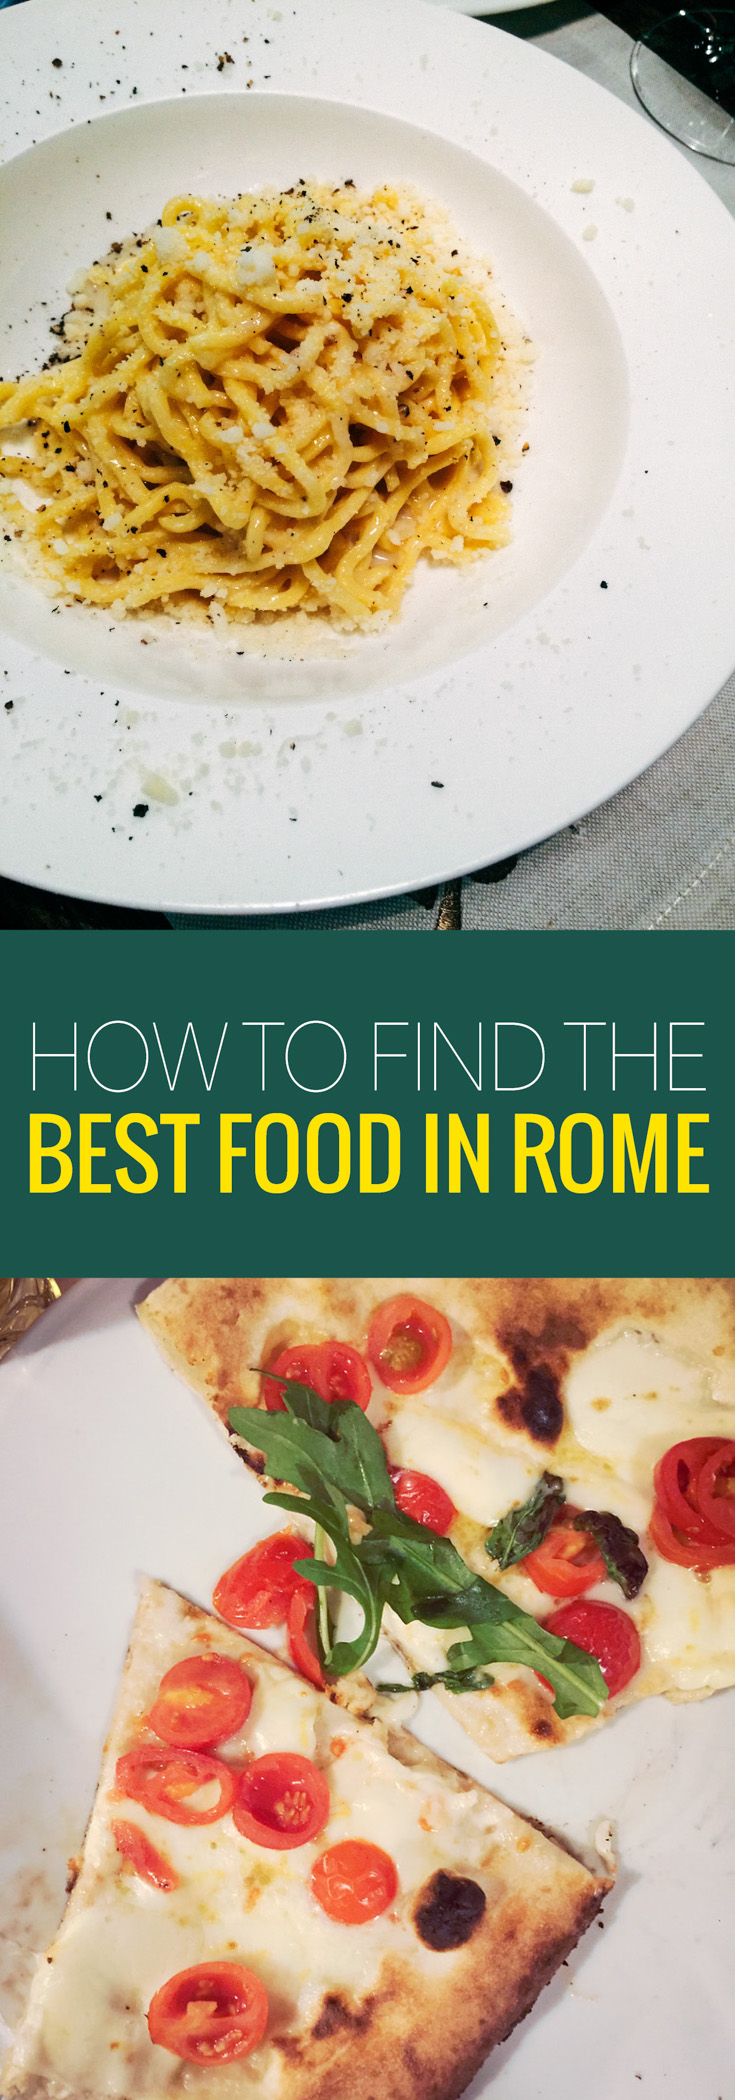 Learn where to find the best food in Rome with this Rome food tour by Walks of Italy. Highly recommended!